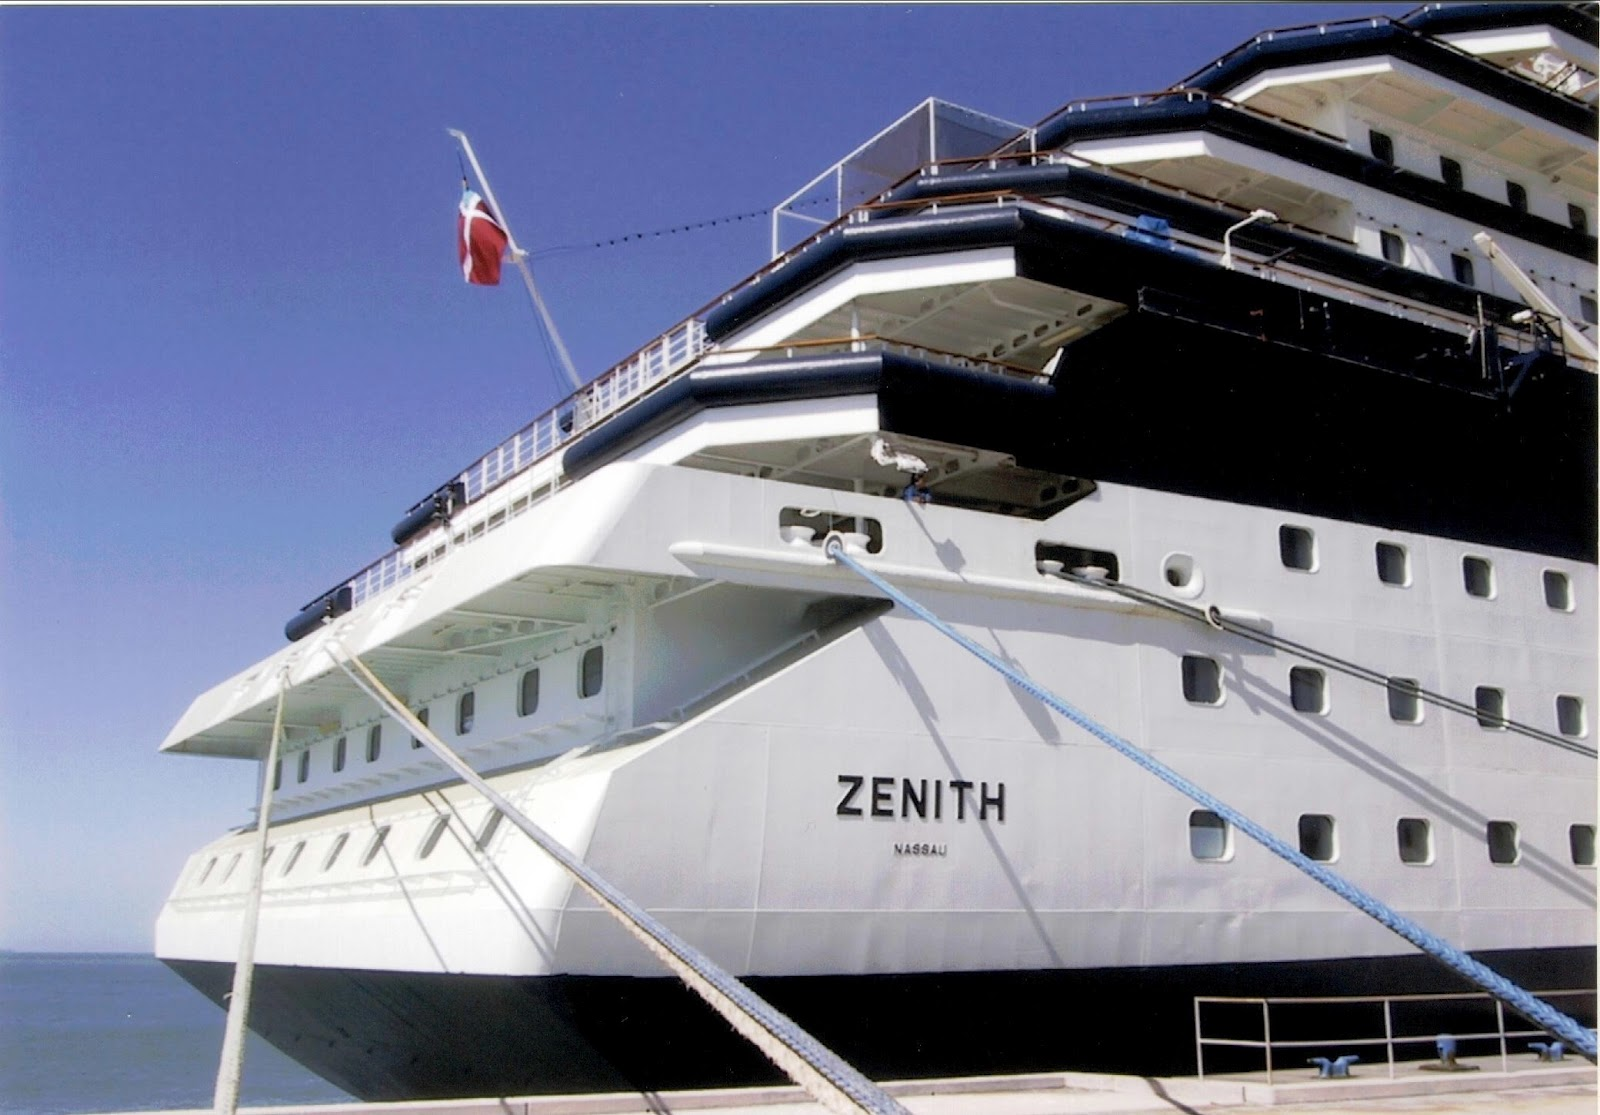 Celebrity zenith cruise reviews